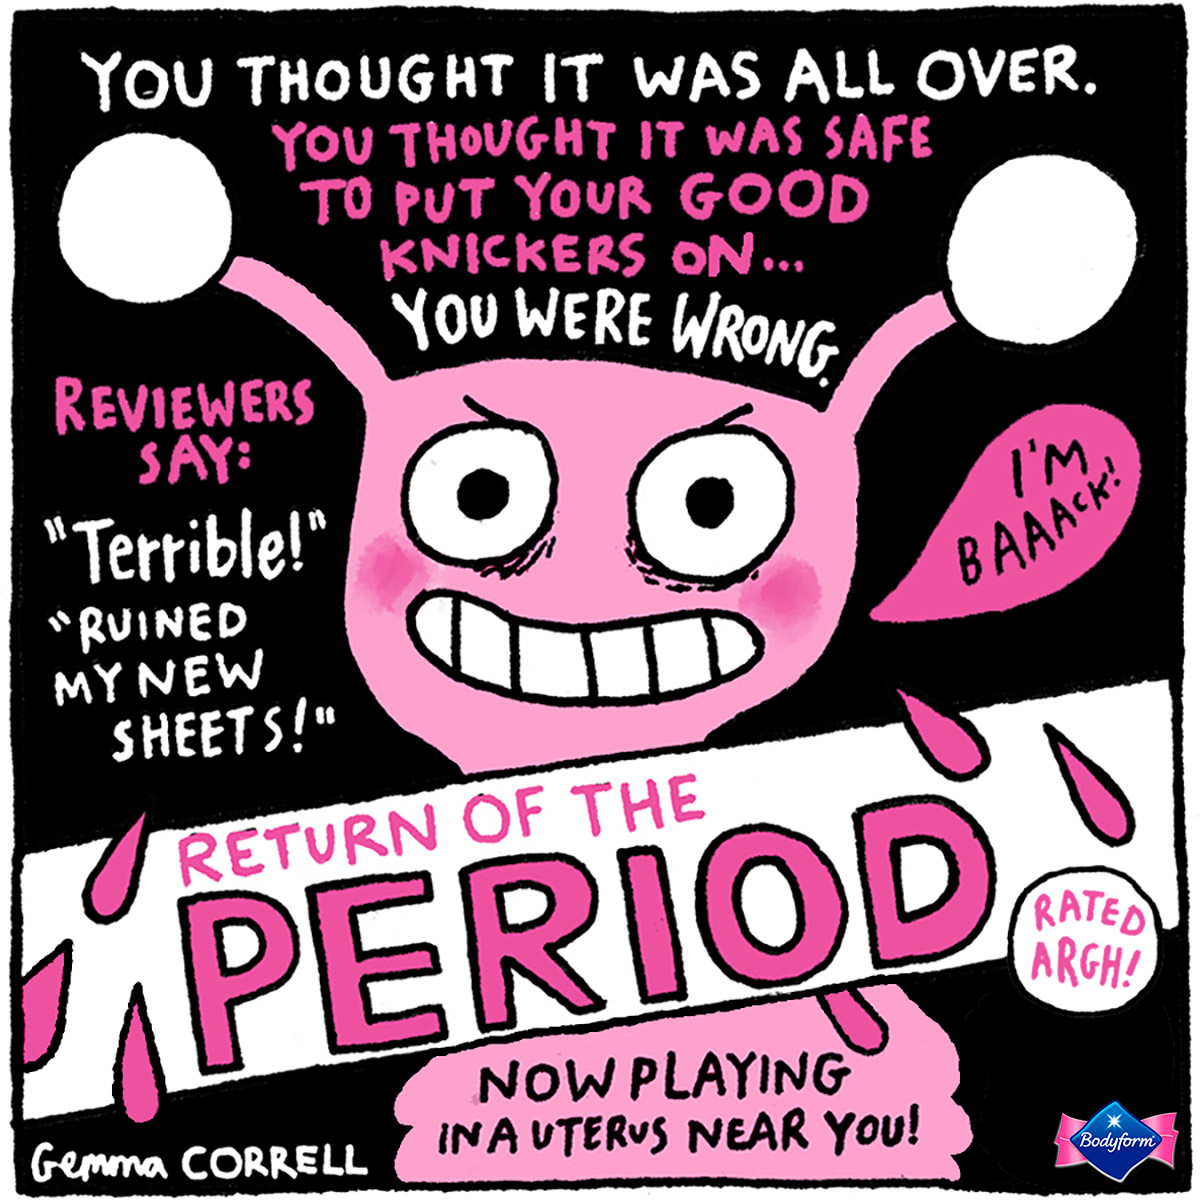 Bodyform partners with Gemma Correll to create a brilliant campaign about period pains